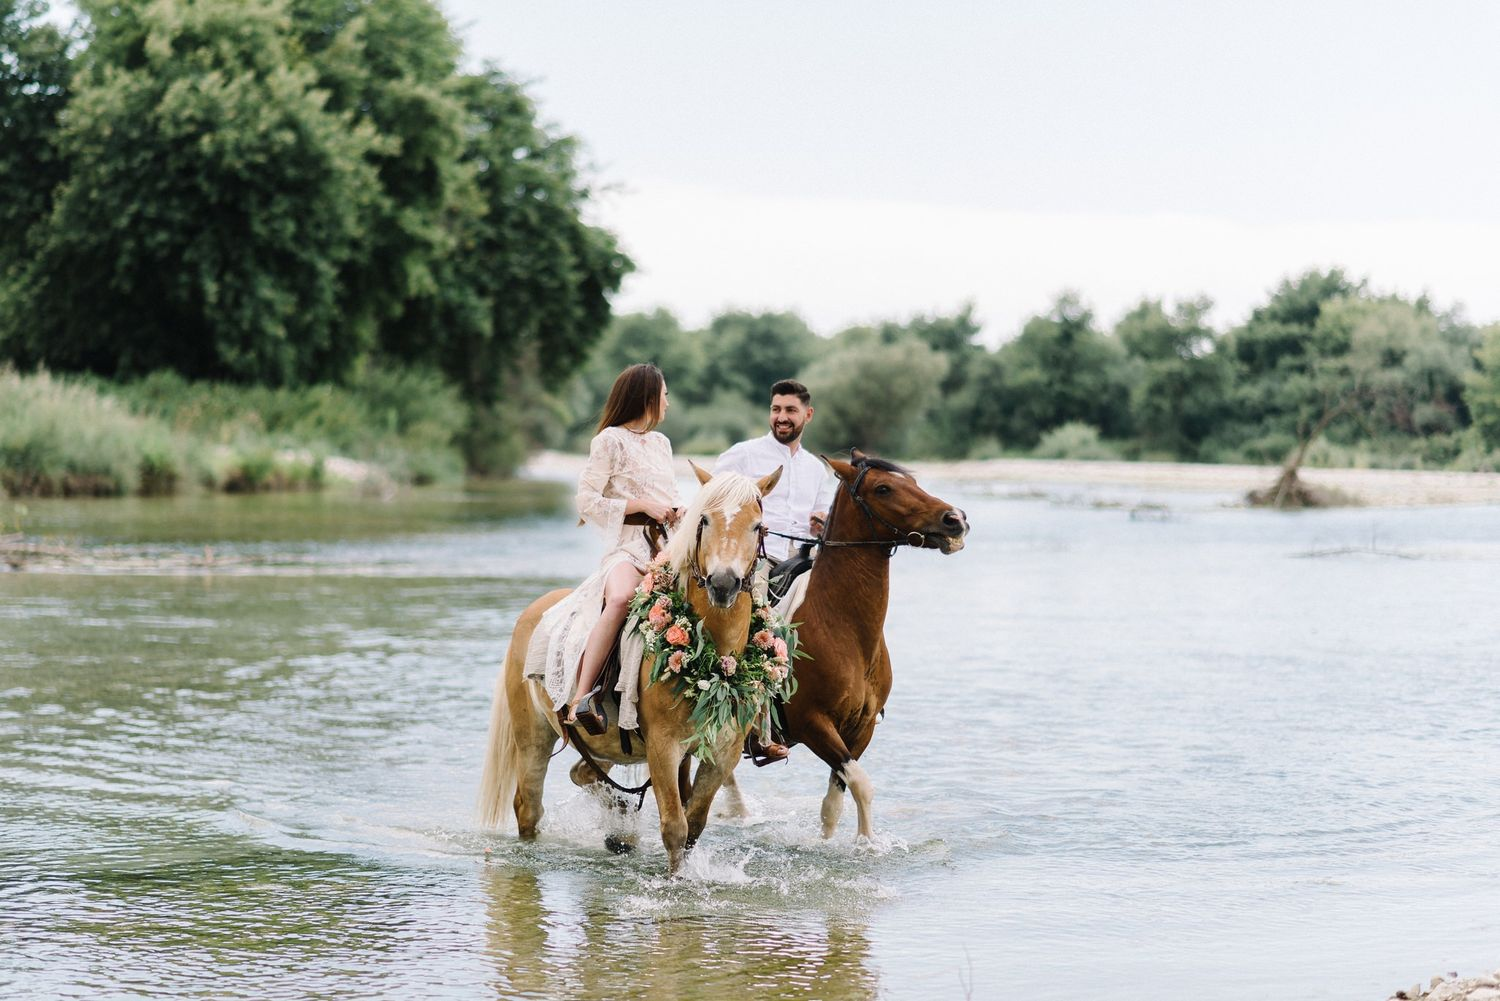 couple engagement shooting riding horses in acheron river greece